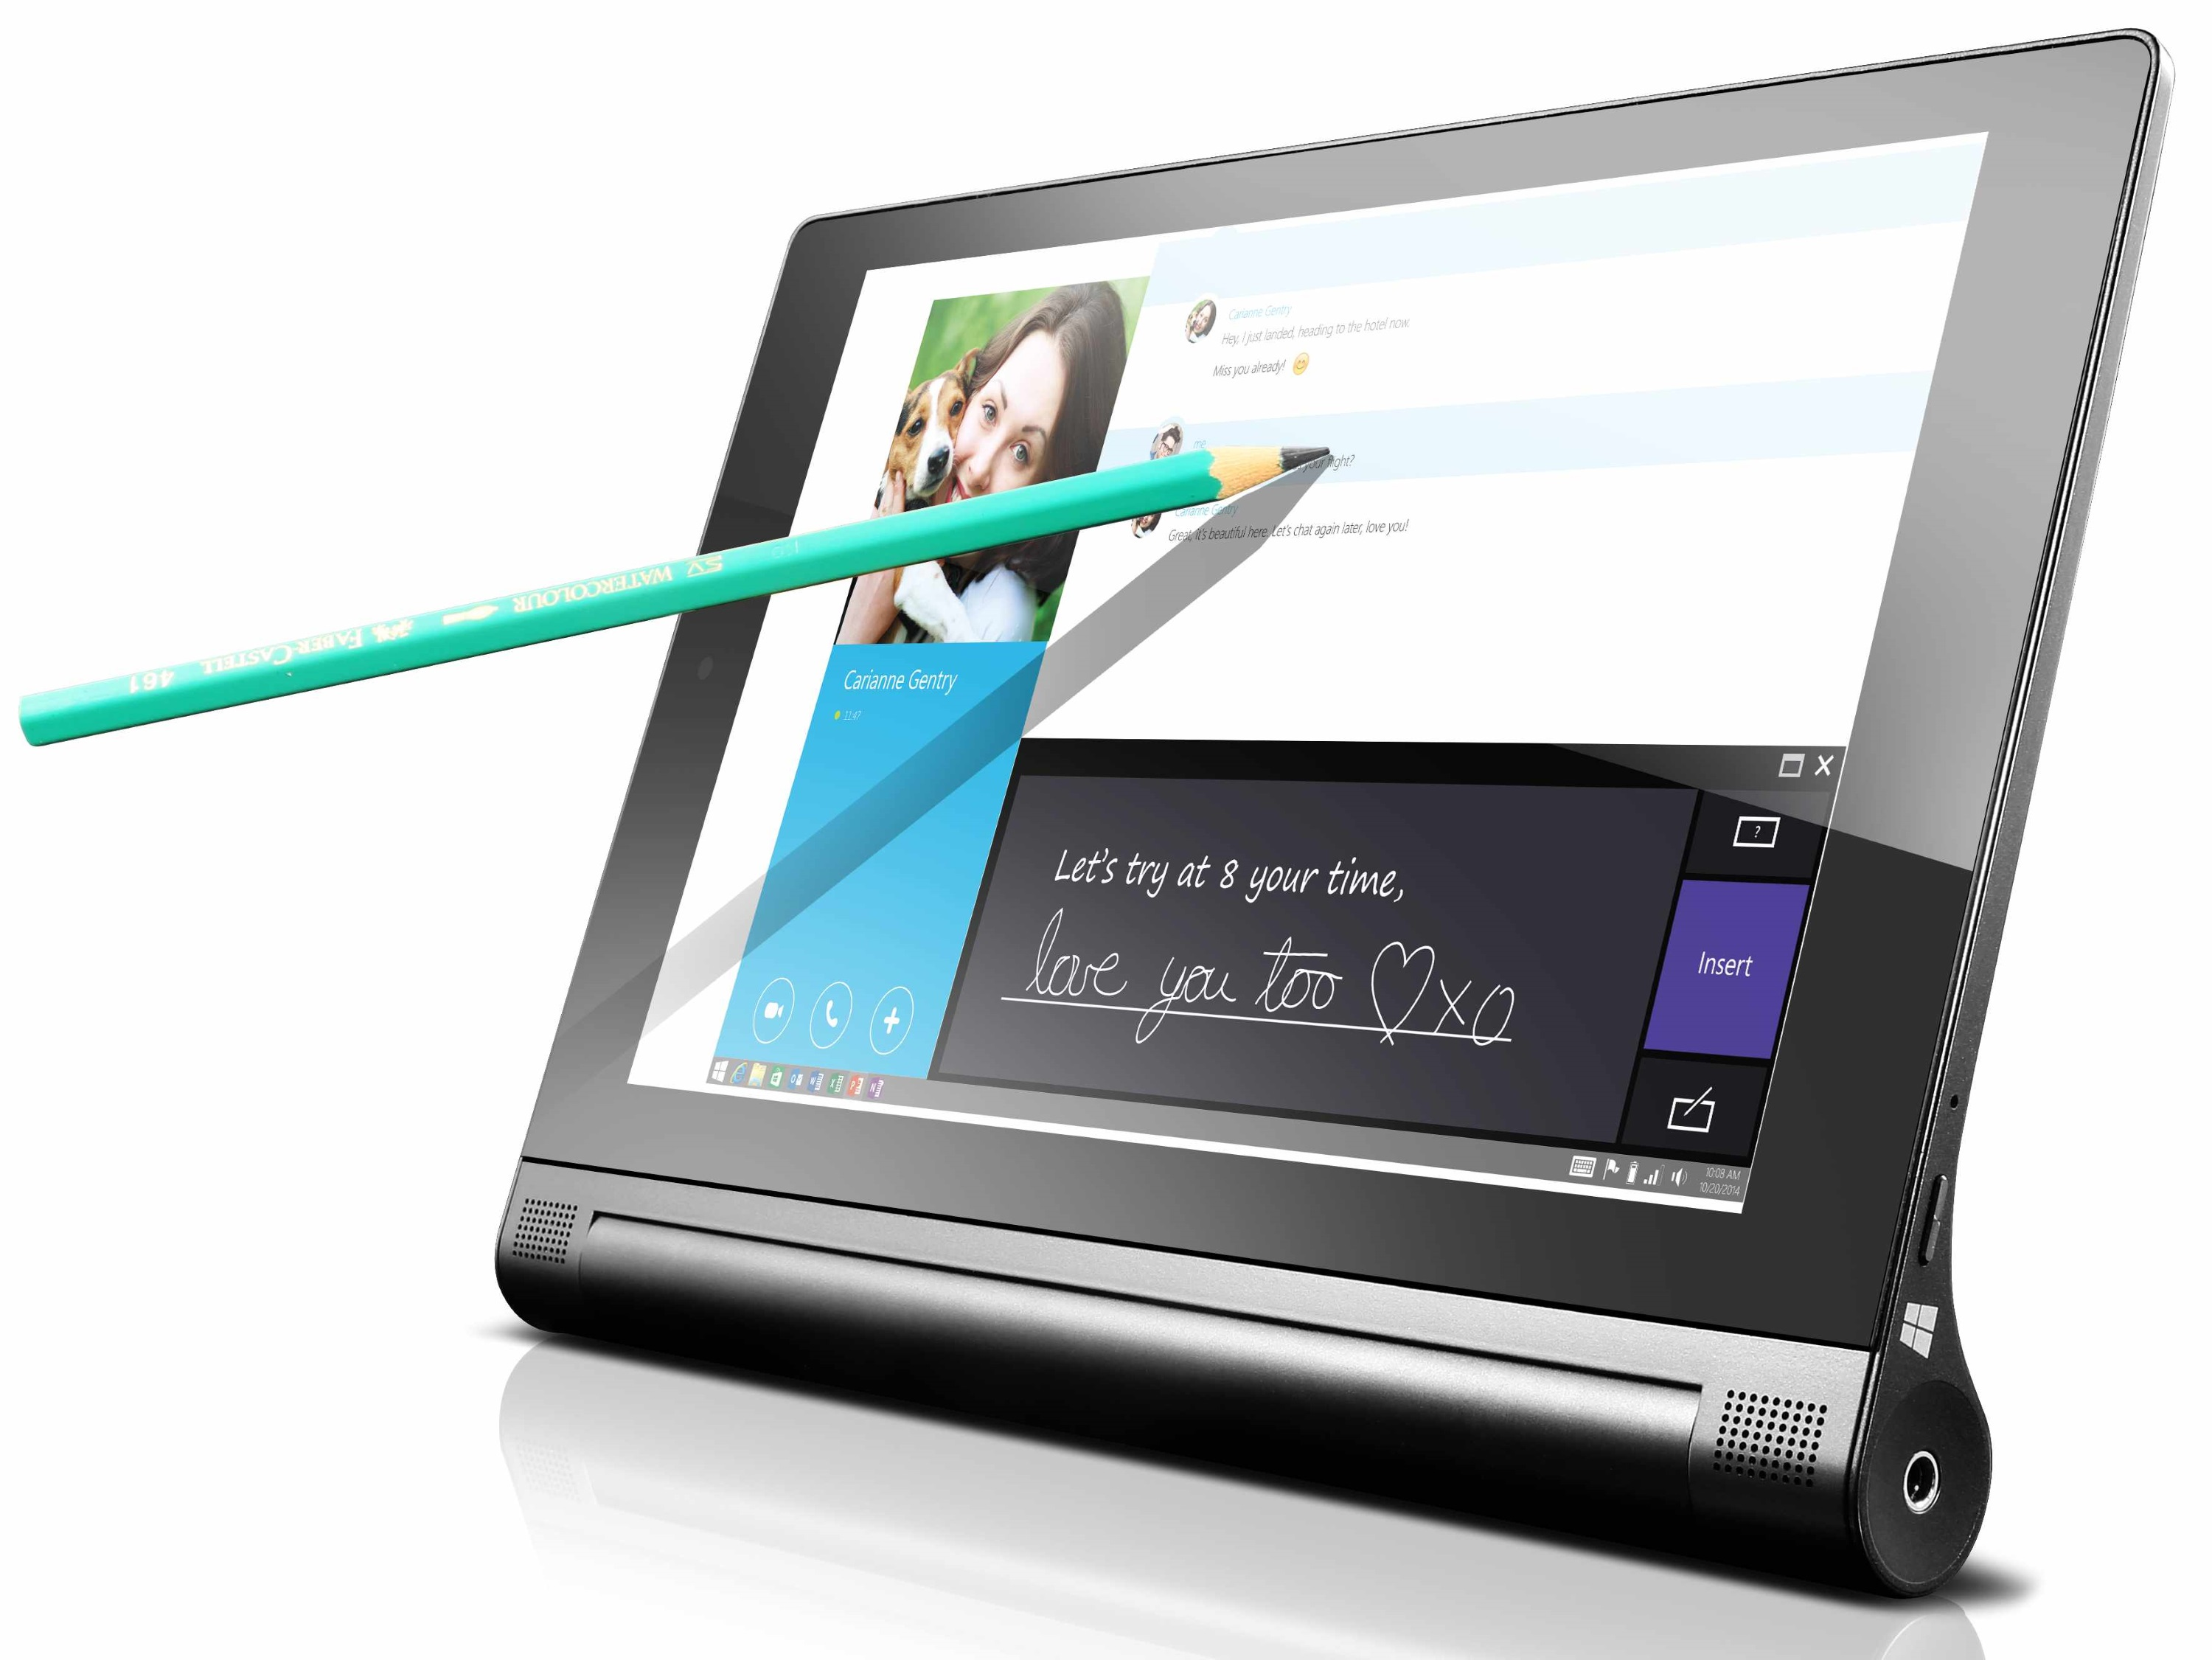 Lenovo-Yoga-Tablet-2-8-inch-with-AnyPen-2.jpg